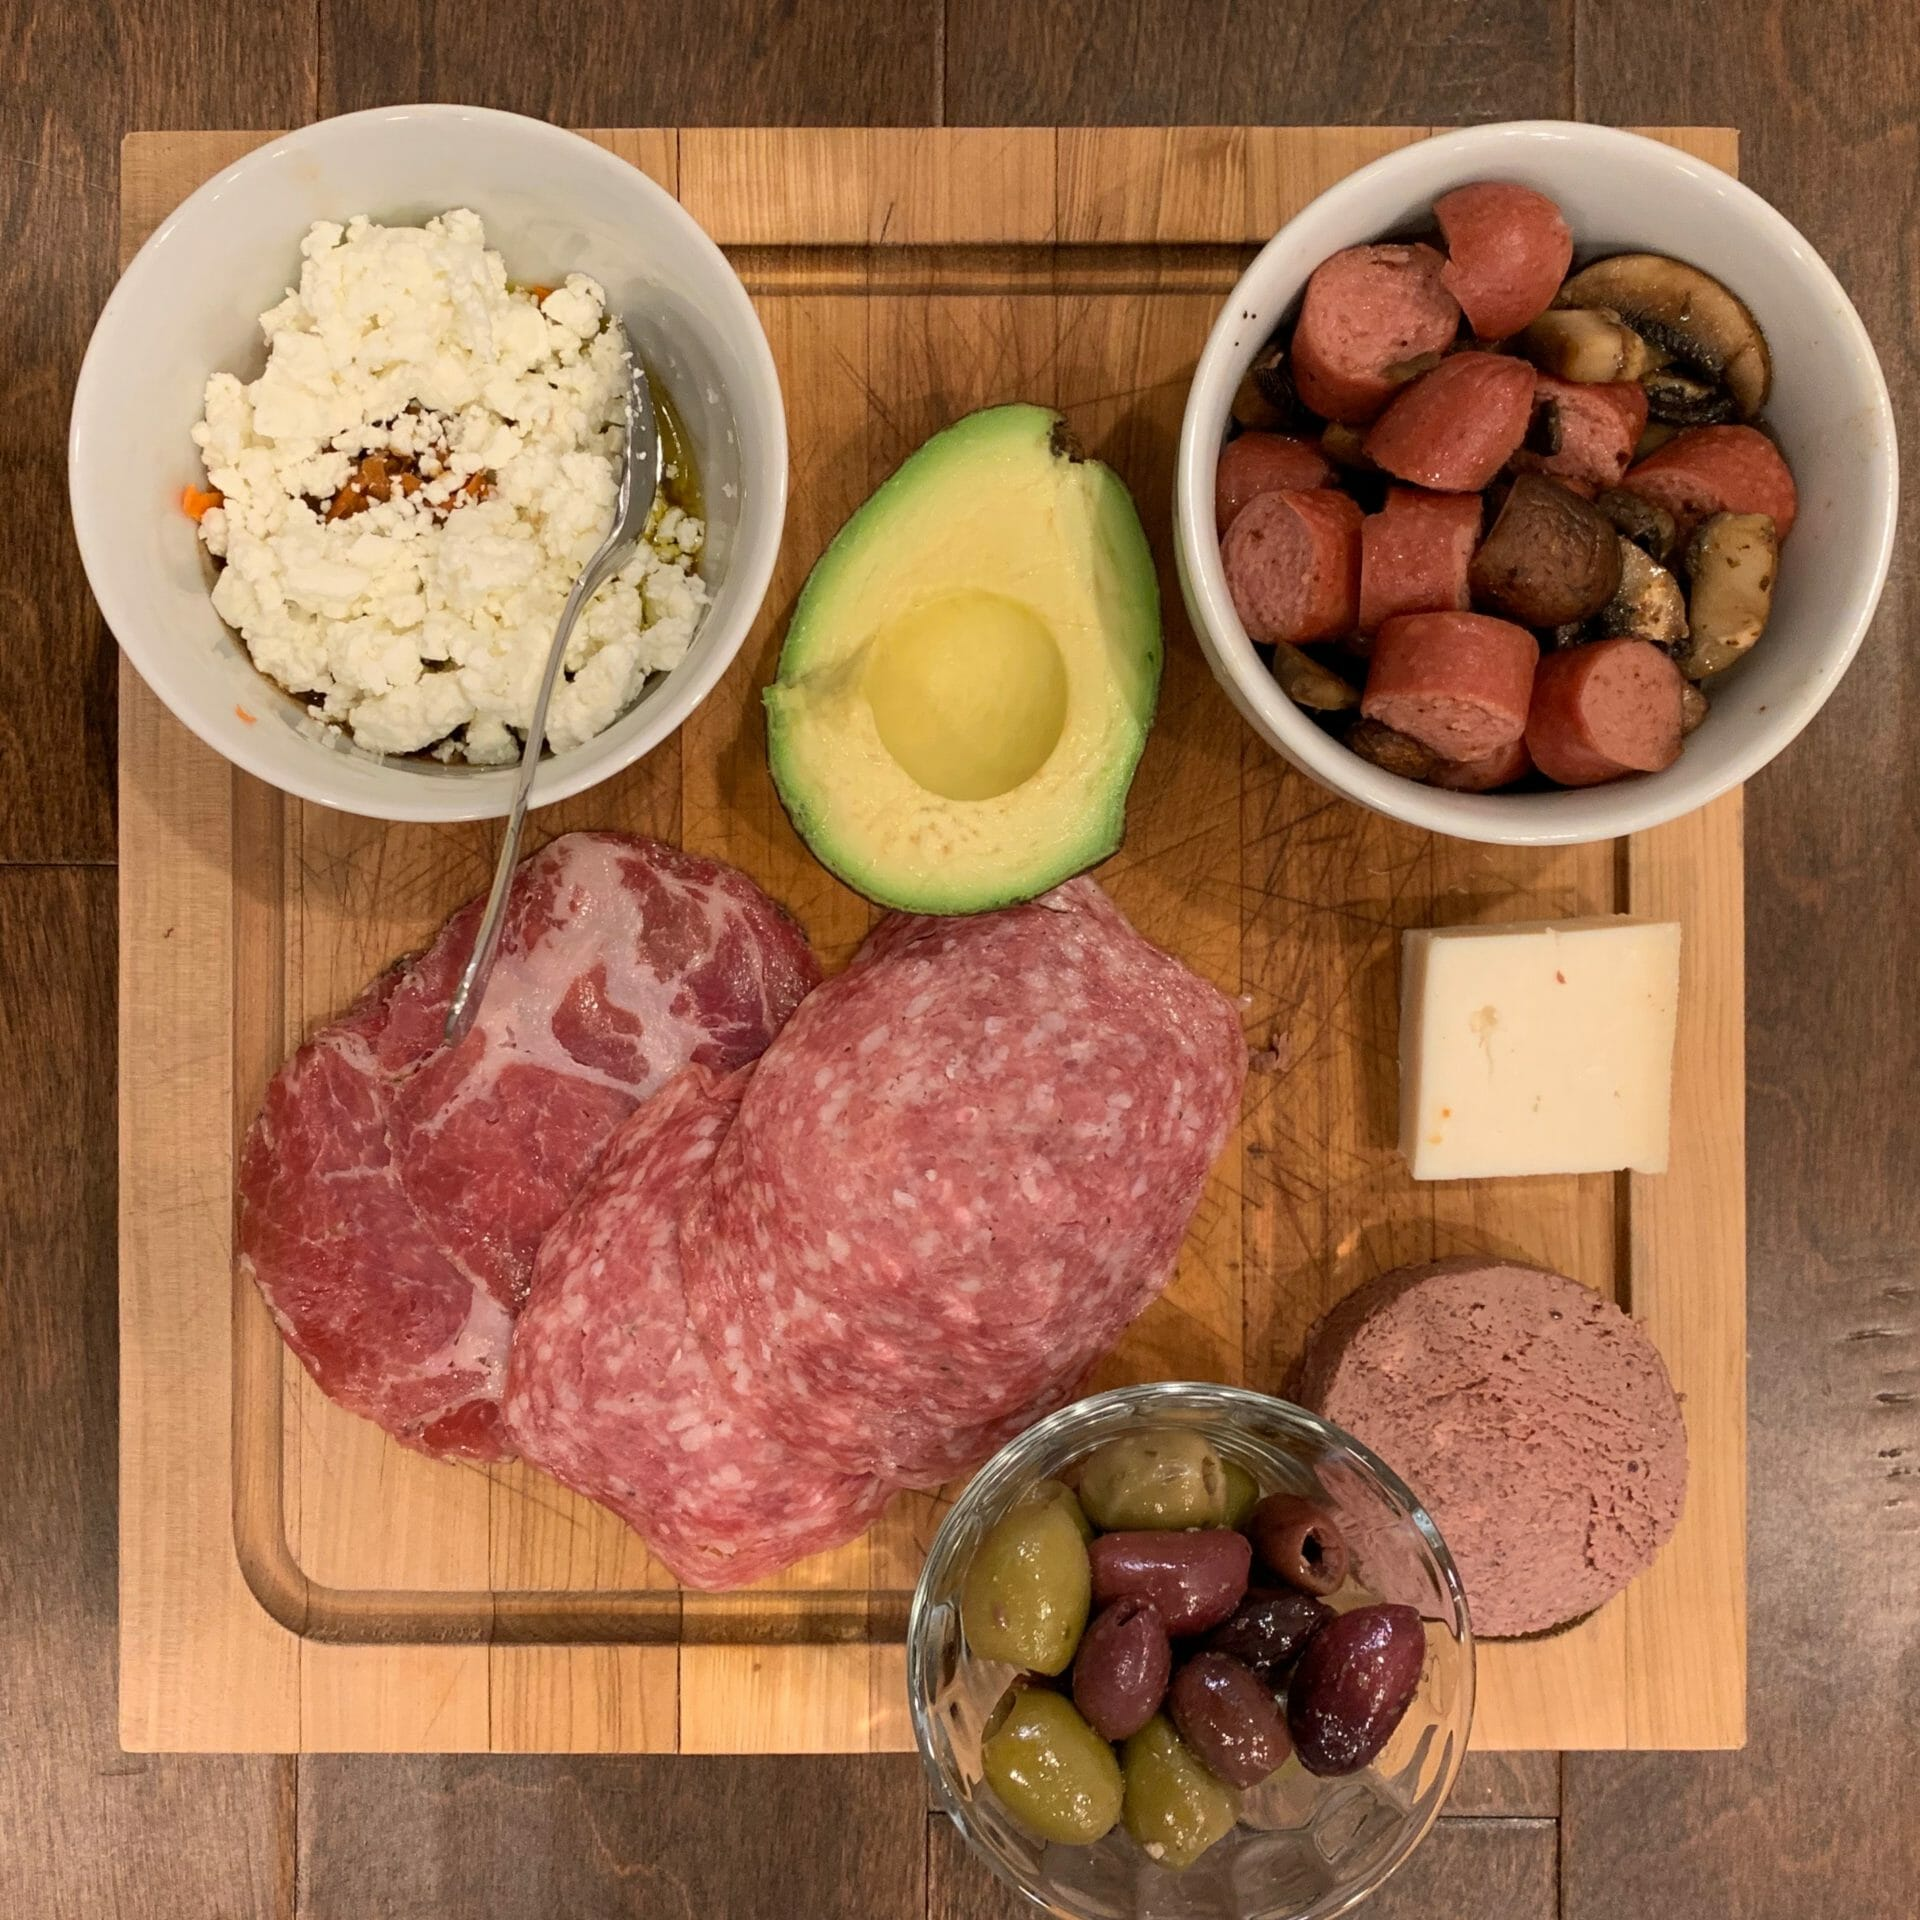 Dinner plate with uncured cold cuts, liverwurst, olives, sausages, goat cheese, mushrooms and a mix of goat cheese crumbles with carrots and a lot of olive oil